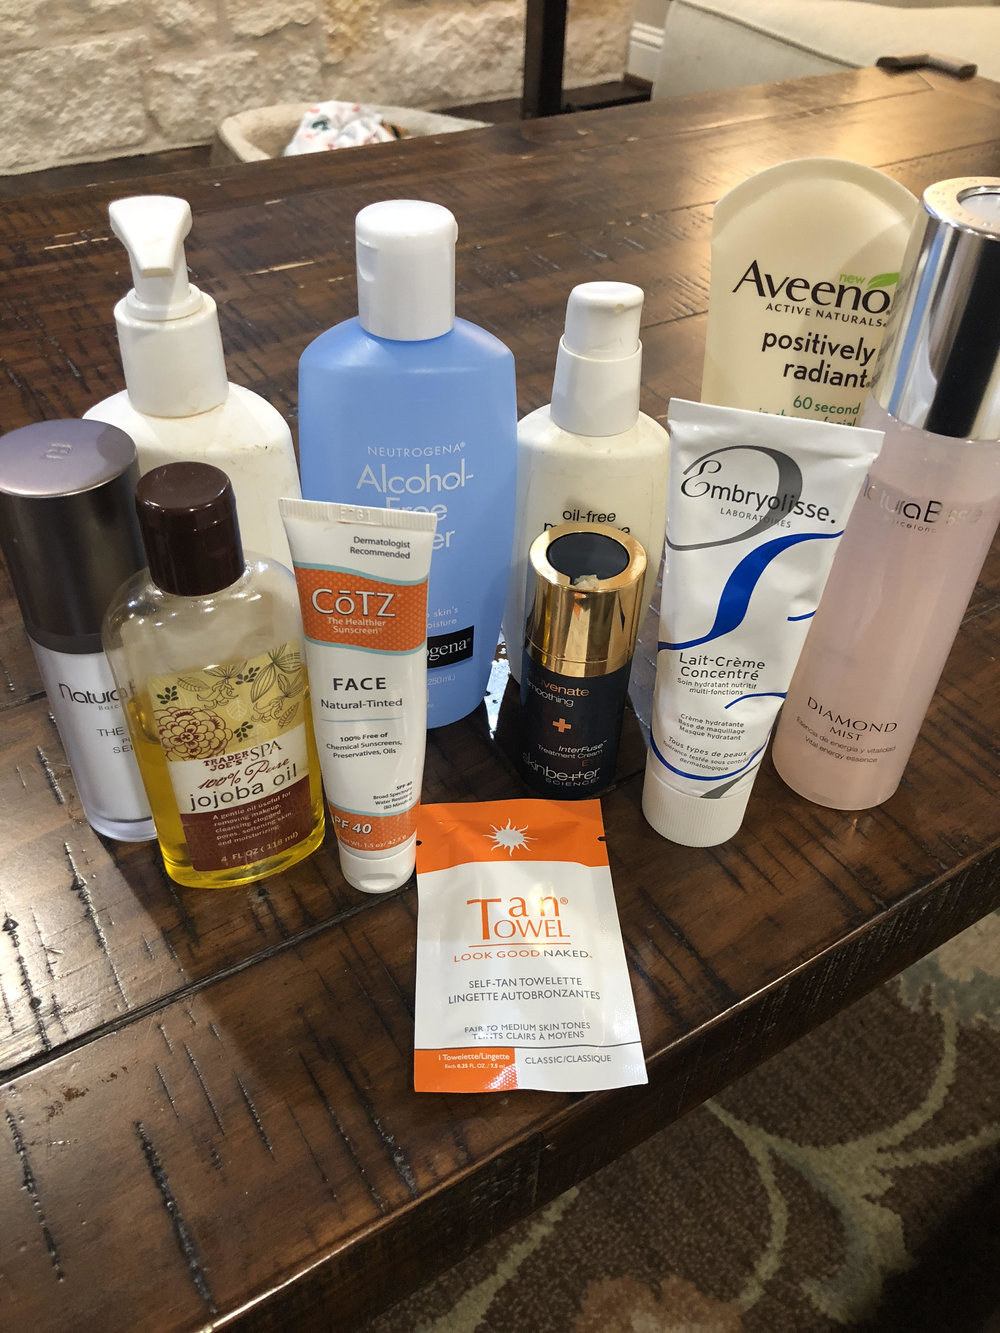 #SkinBabe Jenny Anchondo shares some of her favorite products!